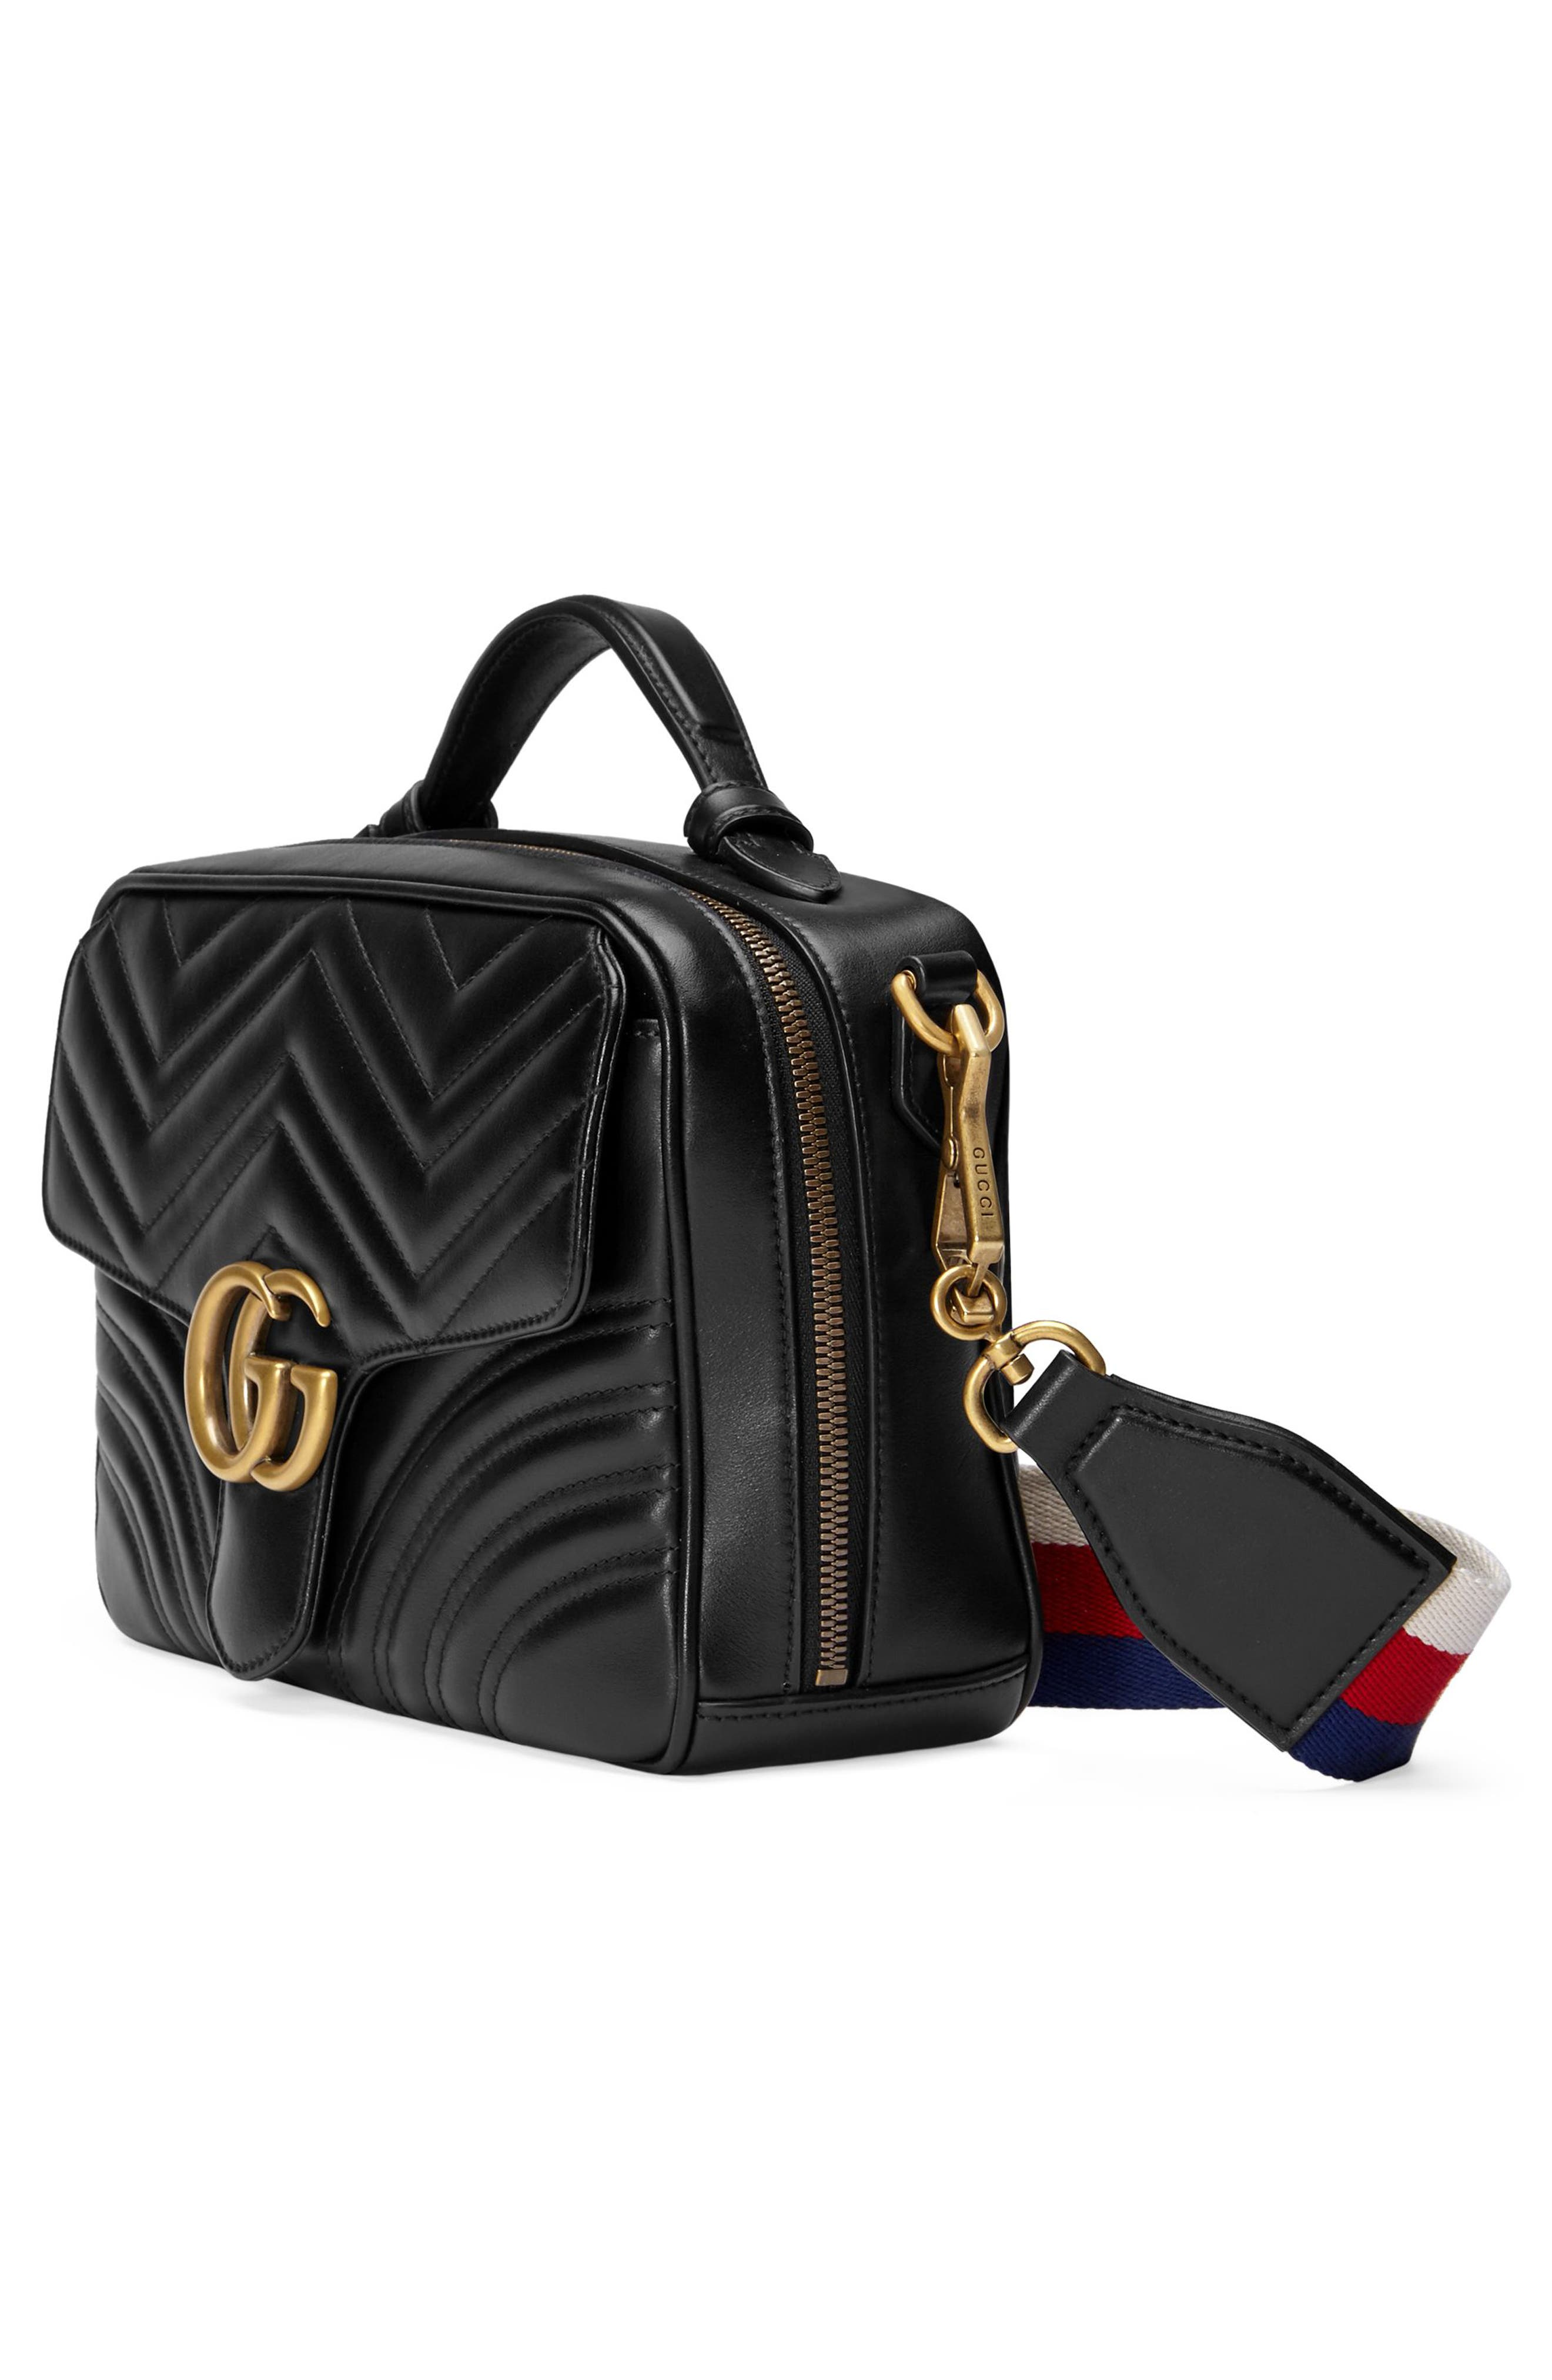 GUCCI, Small GG Marmont 2.0 Matelassé Leather Camera Bag with Webbed Strap, Alternate thumbnail 4, color, NERO/ WHITE/ HIBISCUS RED